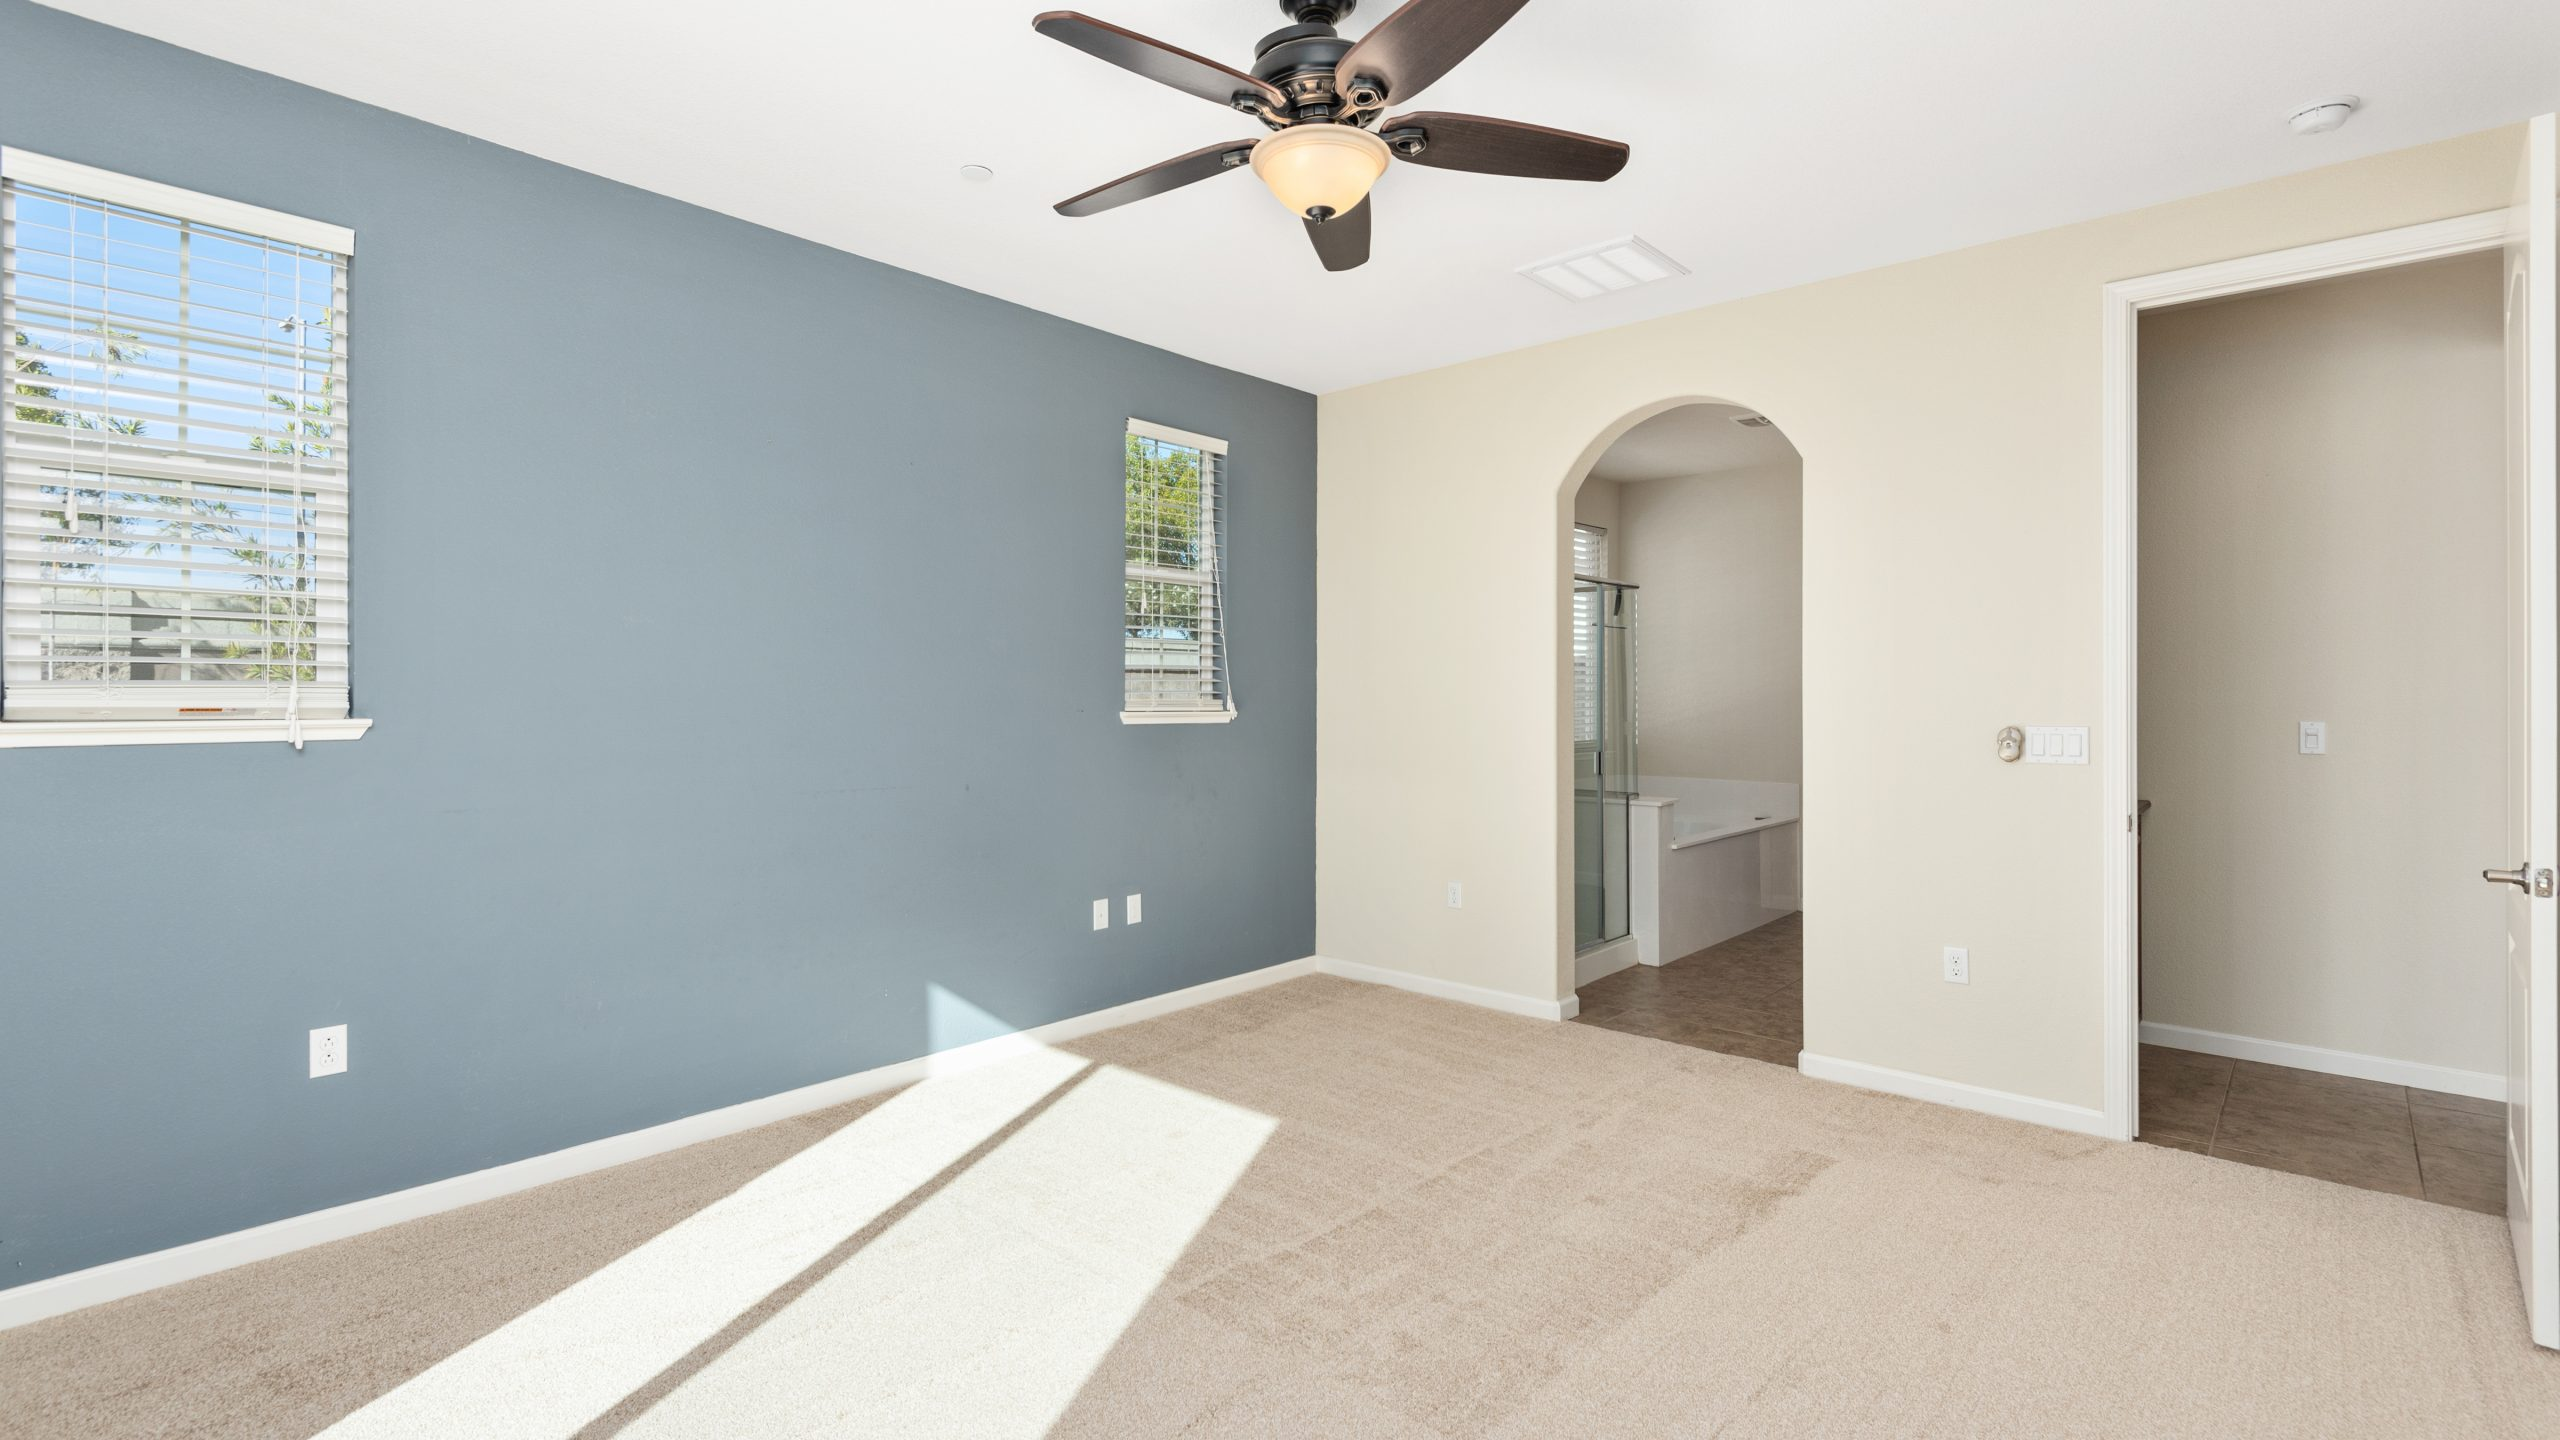 8373-Brookhaven-Circle-Discovery-Bay-18-of-42-1541610487